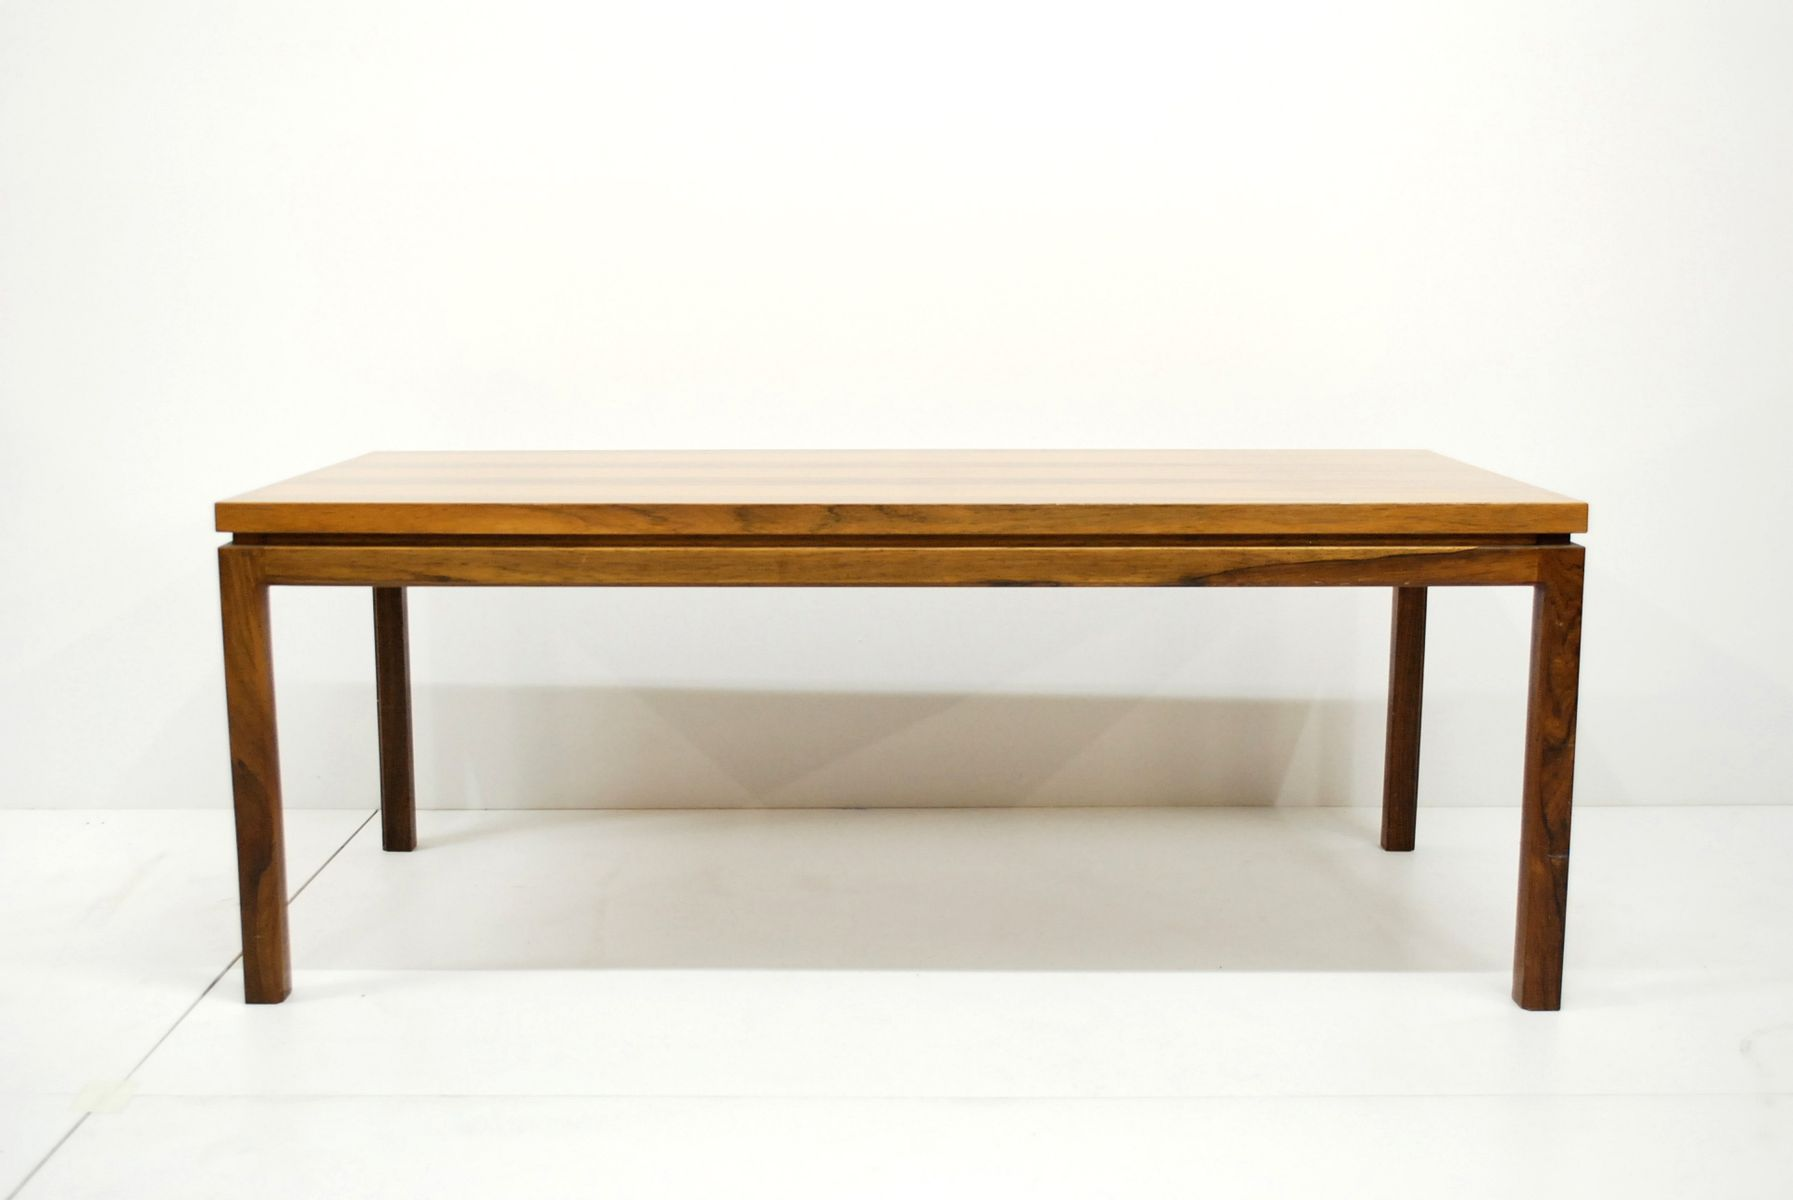 Vintage Danish Rosewood Coffee Table for sale at Pamono